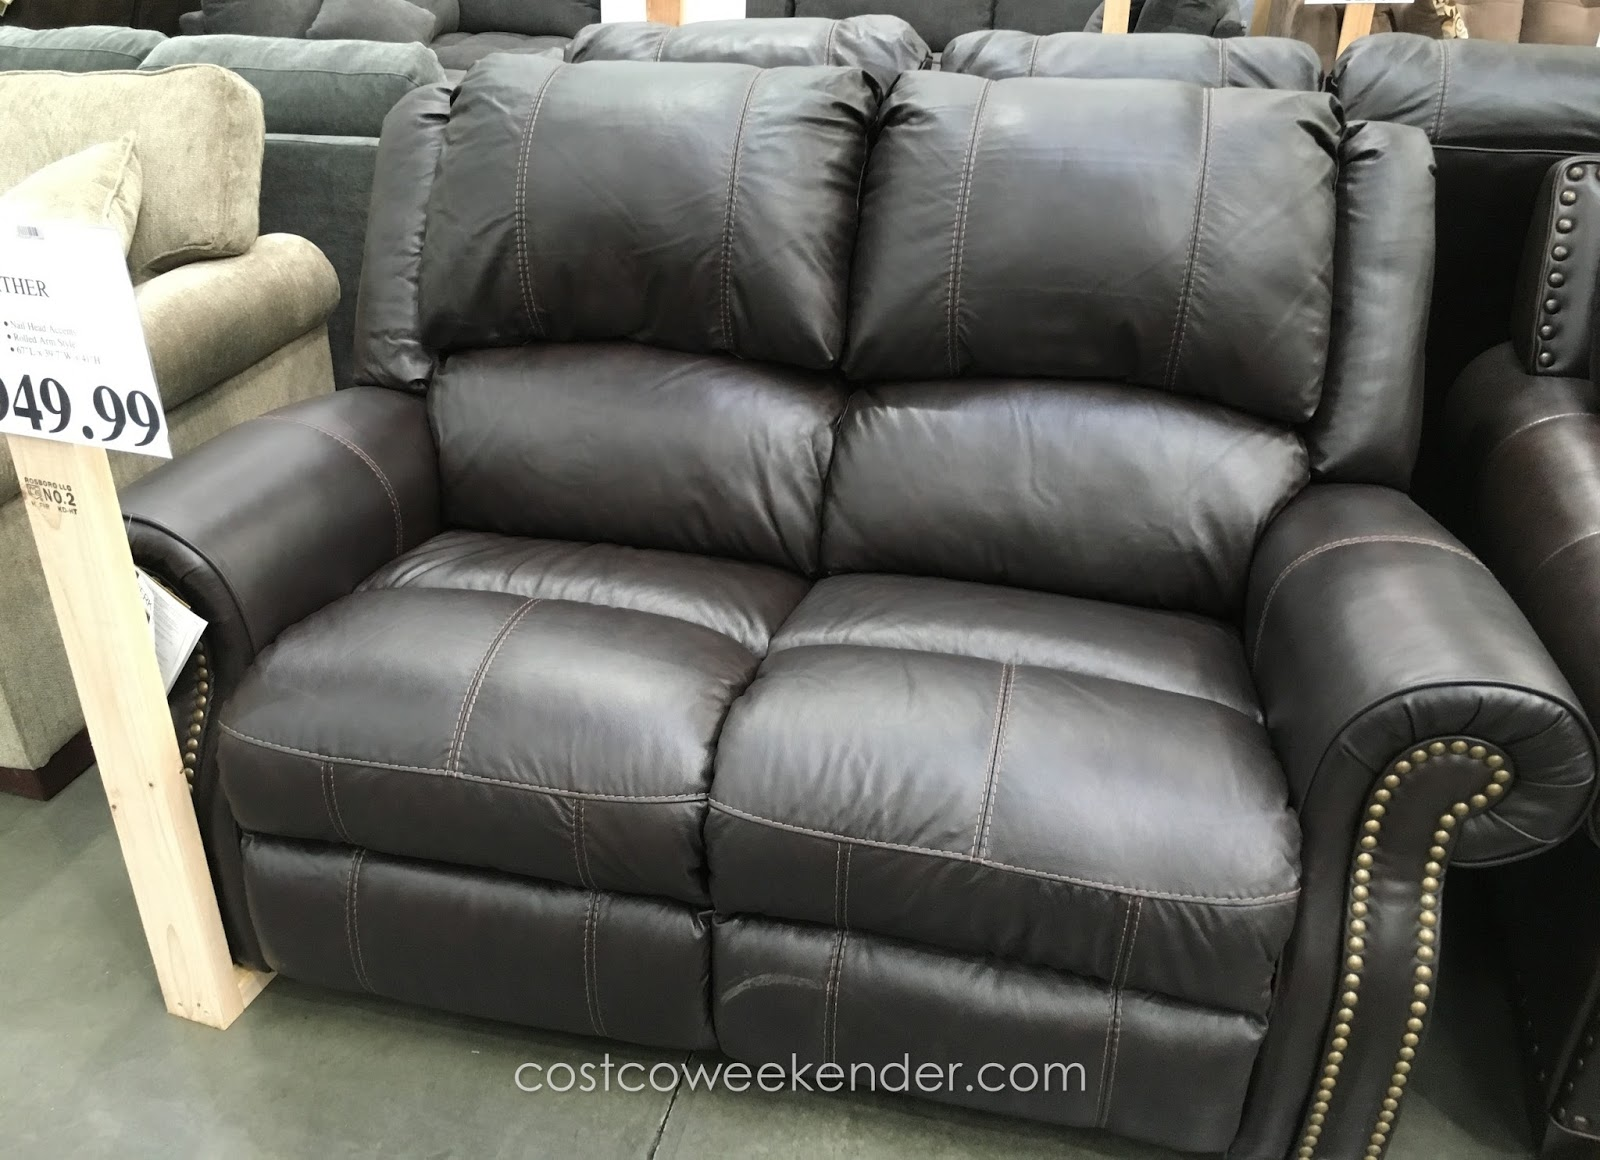 Berkline Reclining Leather Loveseat Costco Weekender